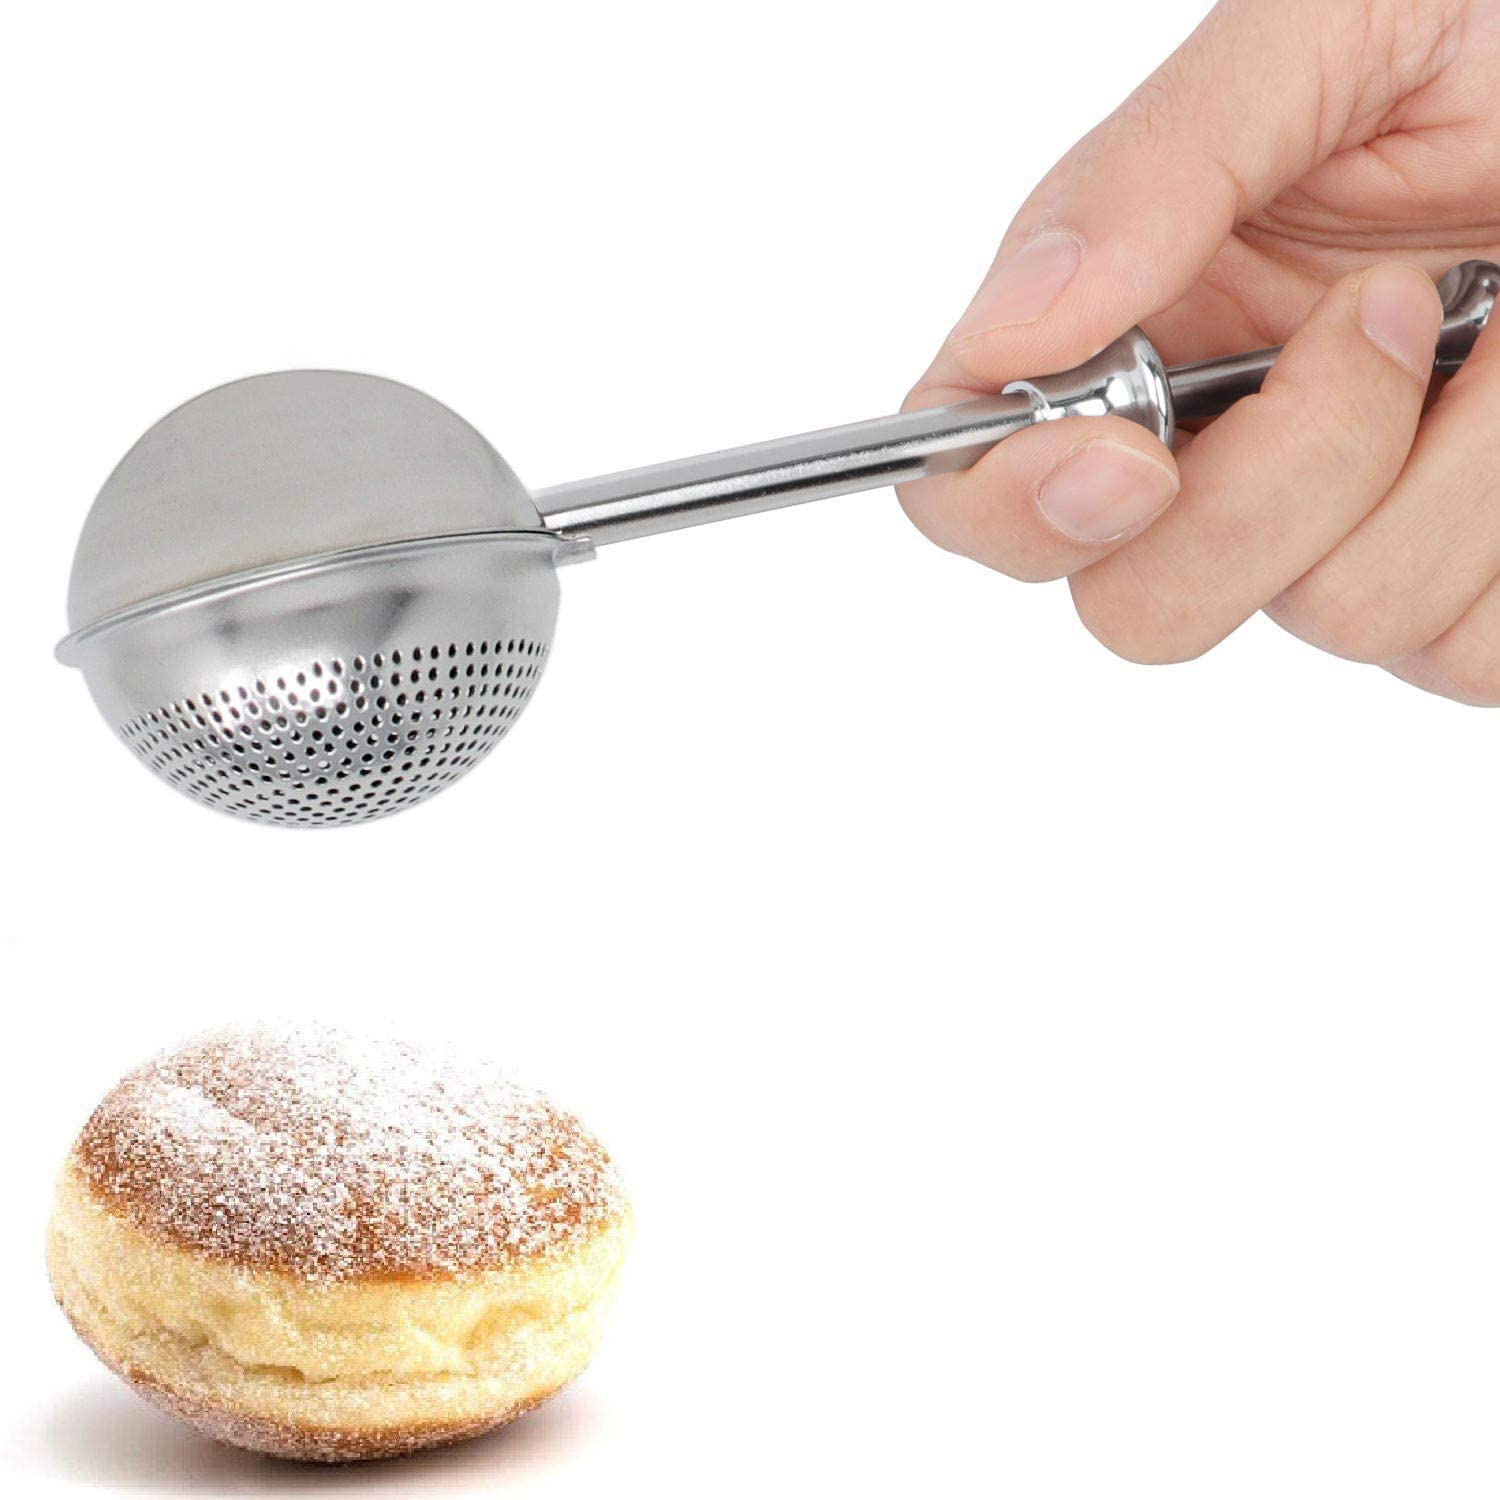 HULISEN Flour Duster for Baking, with Spring Handle, One-Handed Operation, 18/8 Stainless Stee Pick Up and Dust Flour Sifter, Dusting Wand for Sugar, Flour, and Spices